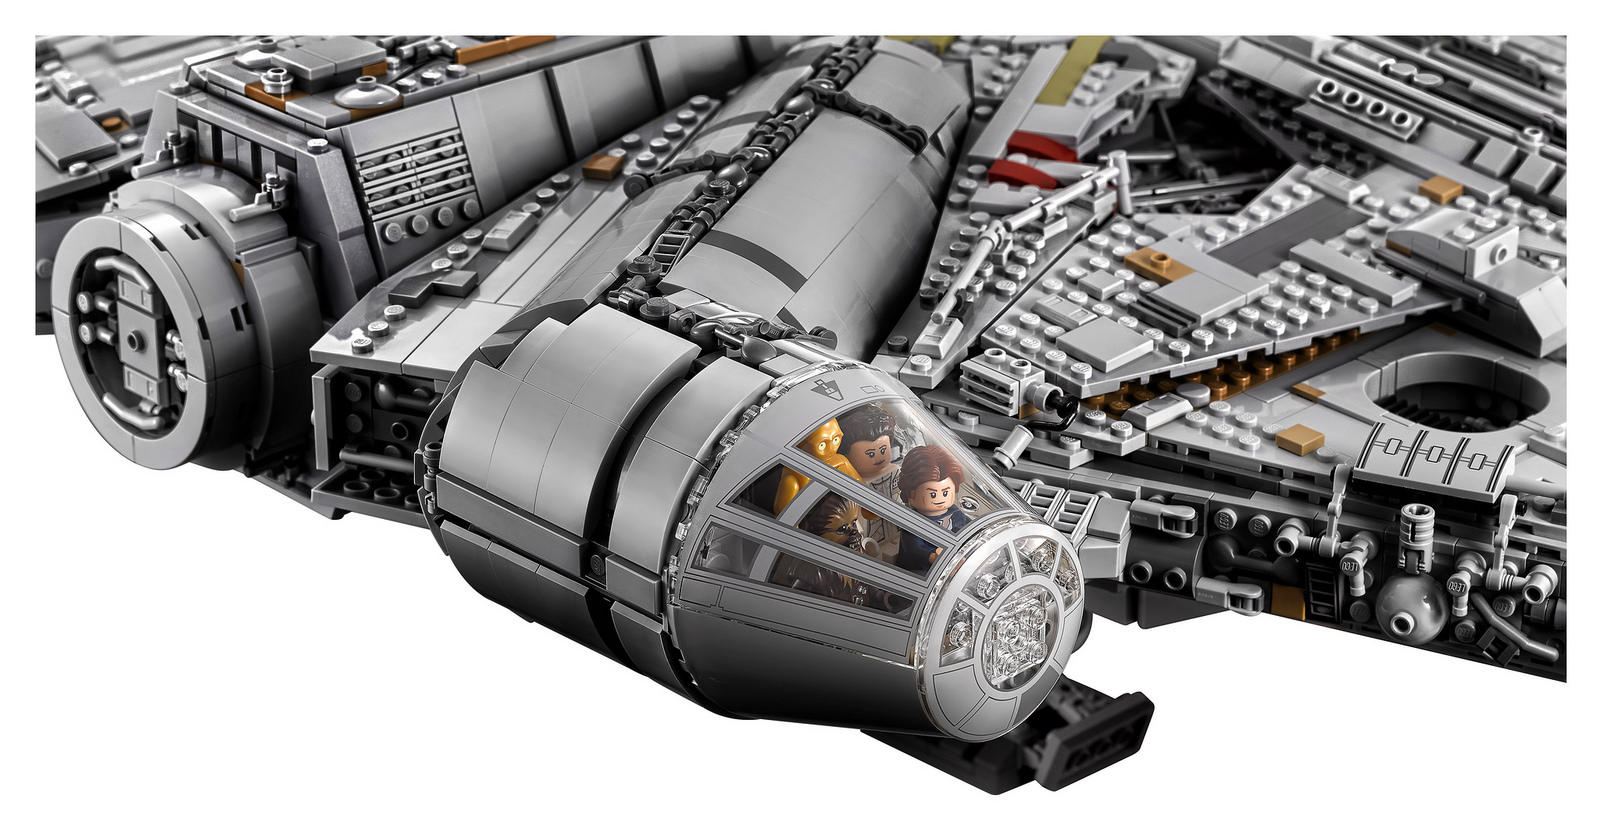 lego-star-wars-ultimate-millennium-falcon-011